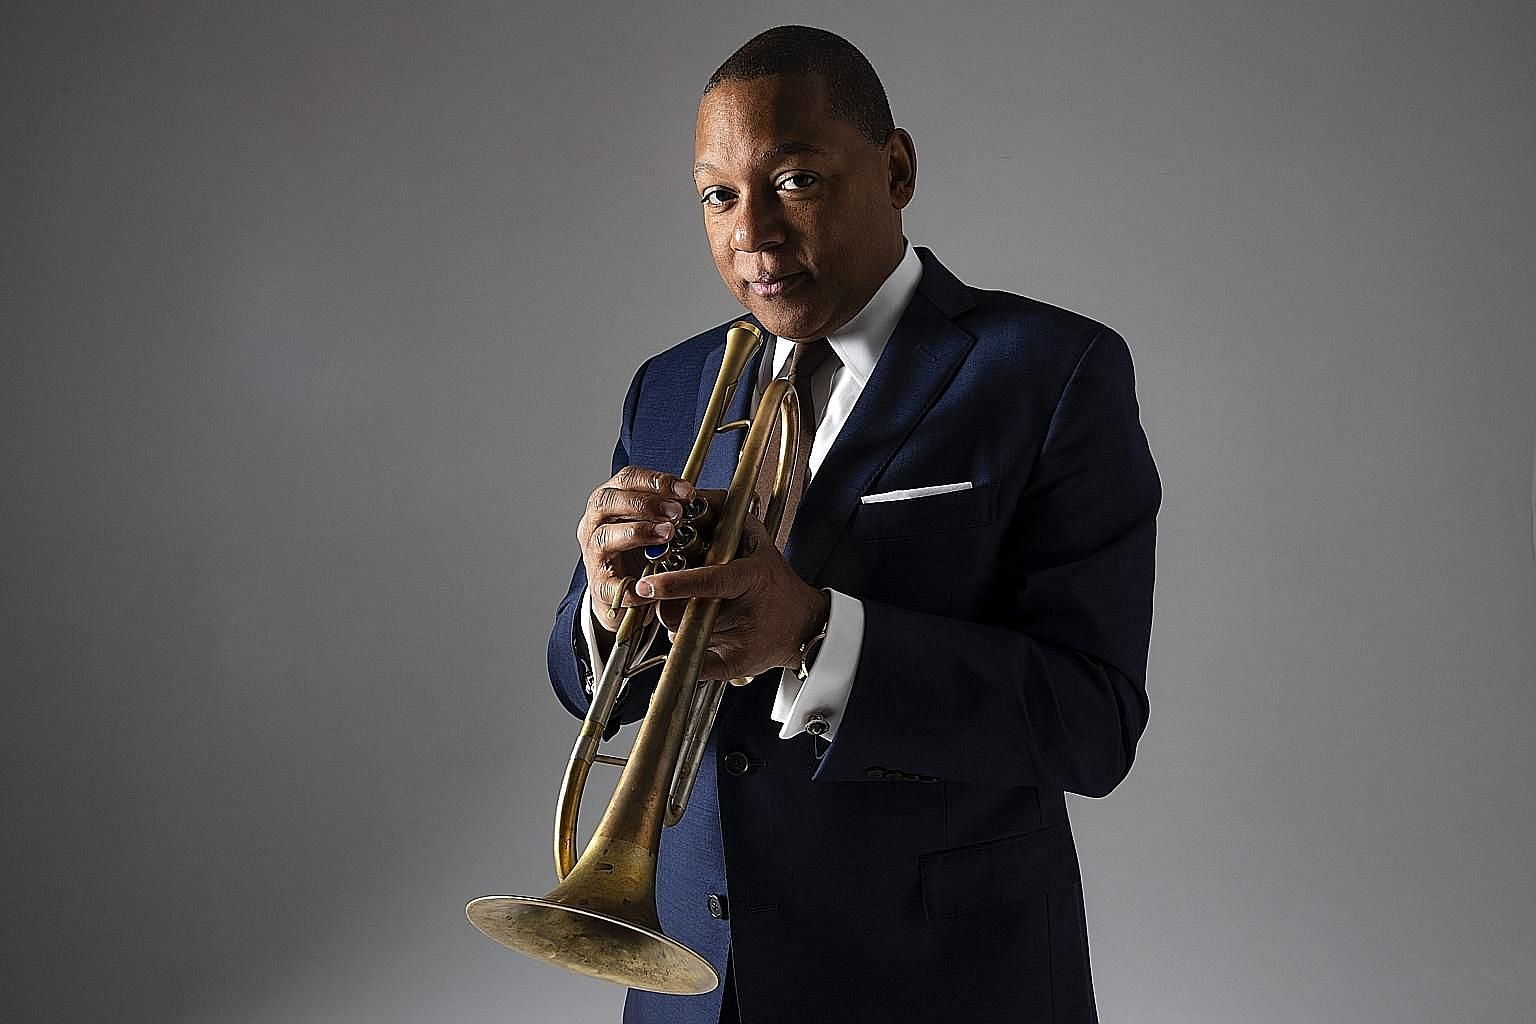 Besides two gigs, musician Wynton Marsalis (above) and his orchestra will play an afternoon jazz session for young people, targeted at students, in Singapore next month.